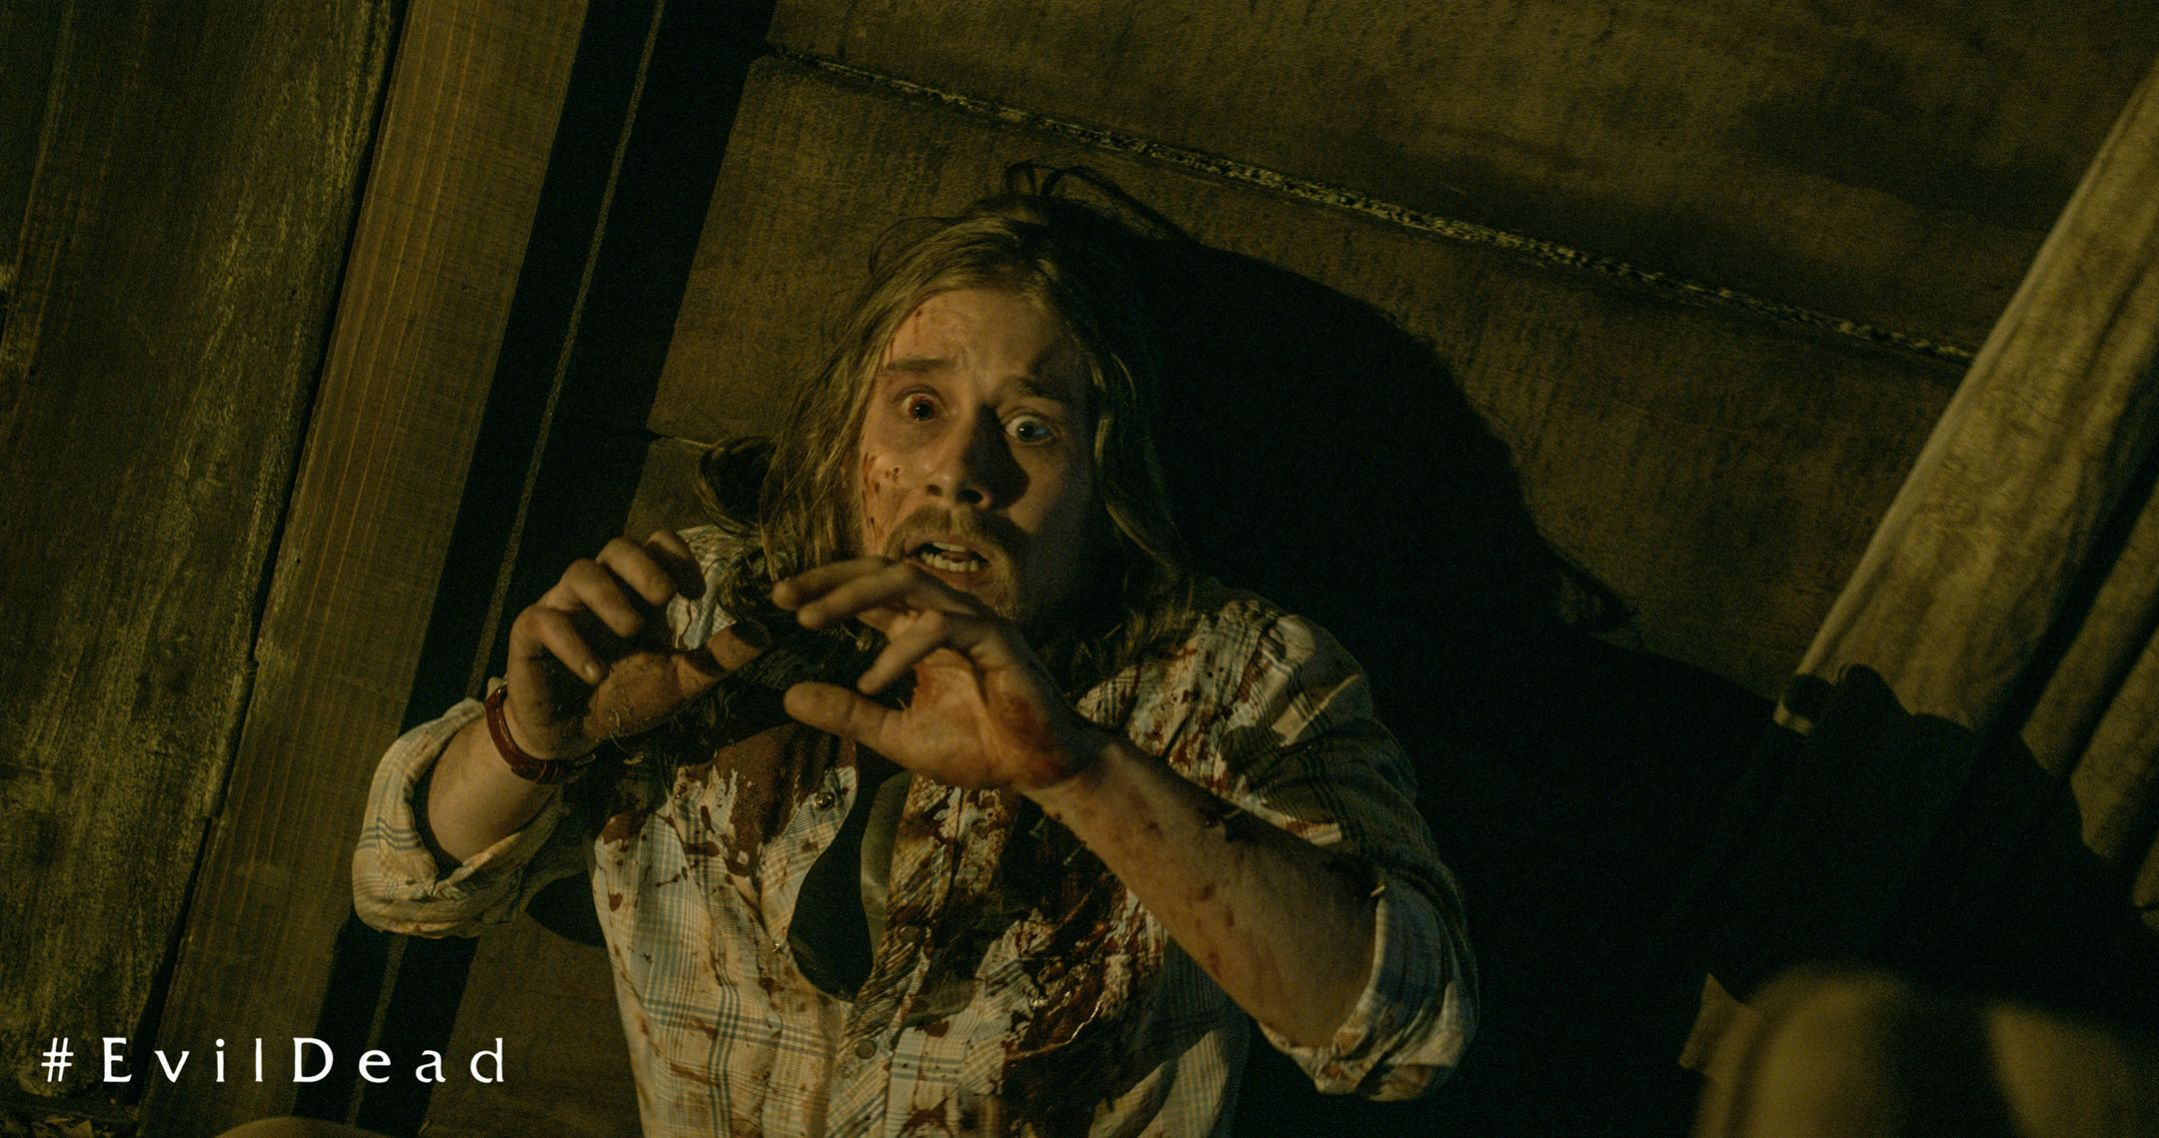 Gruesome Evil Dead Movie Still